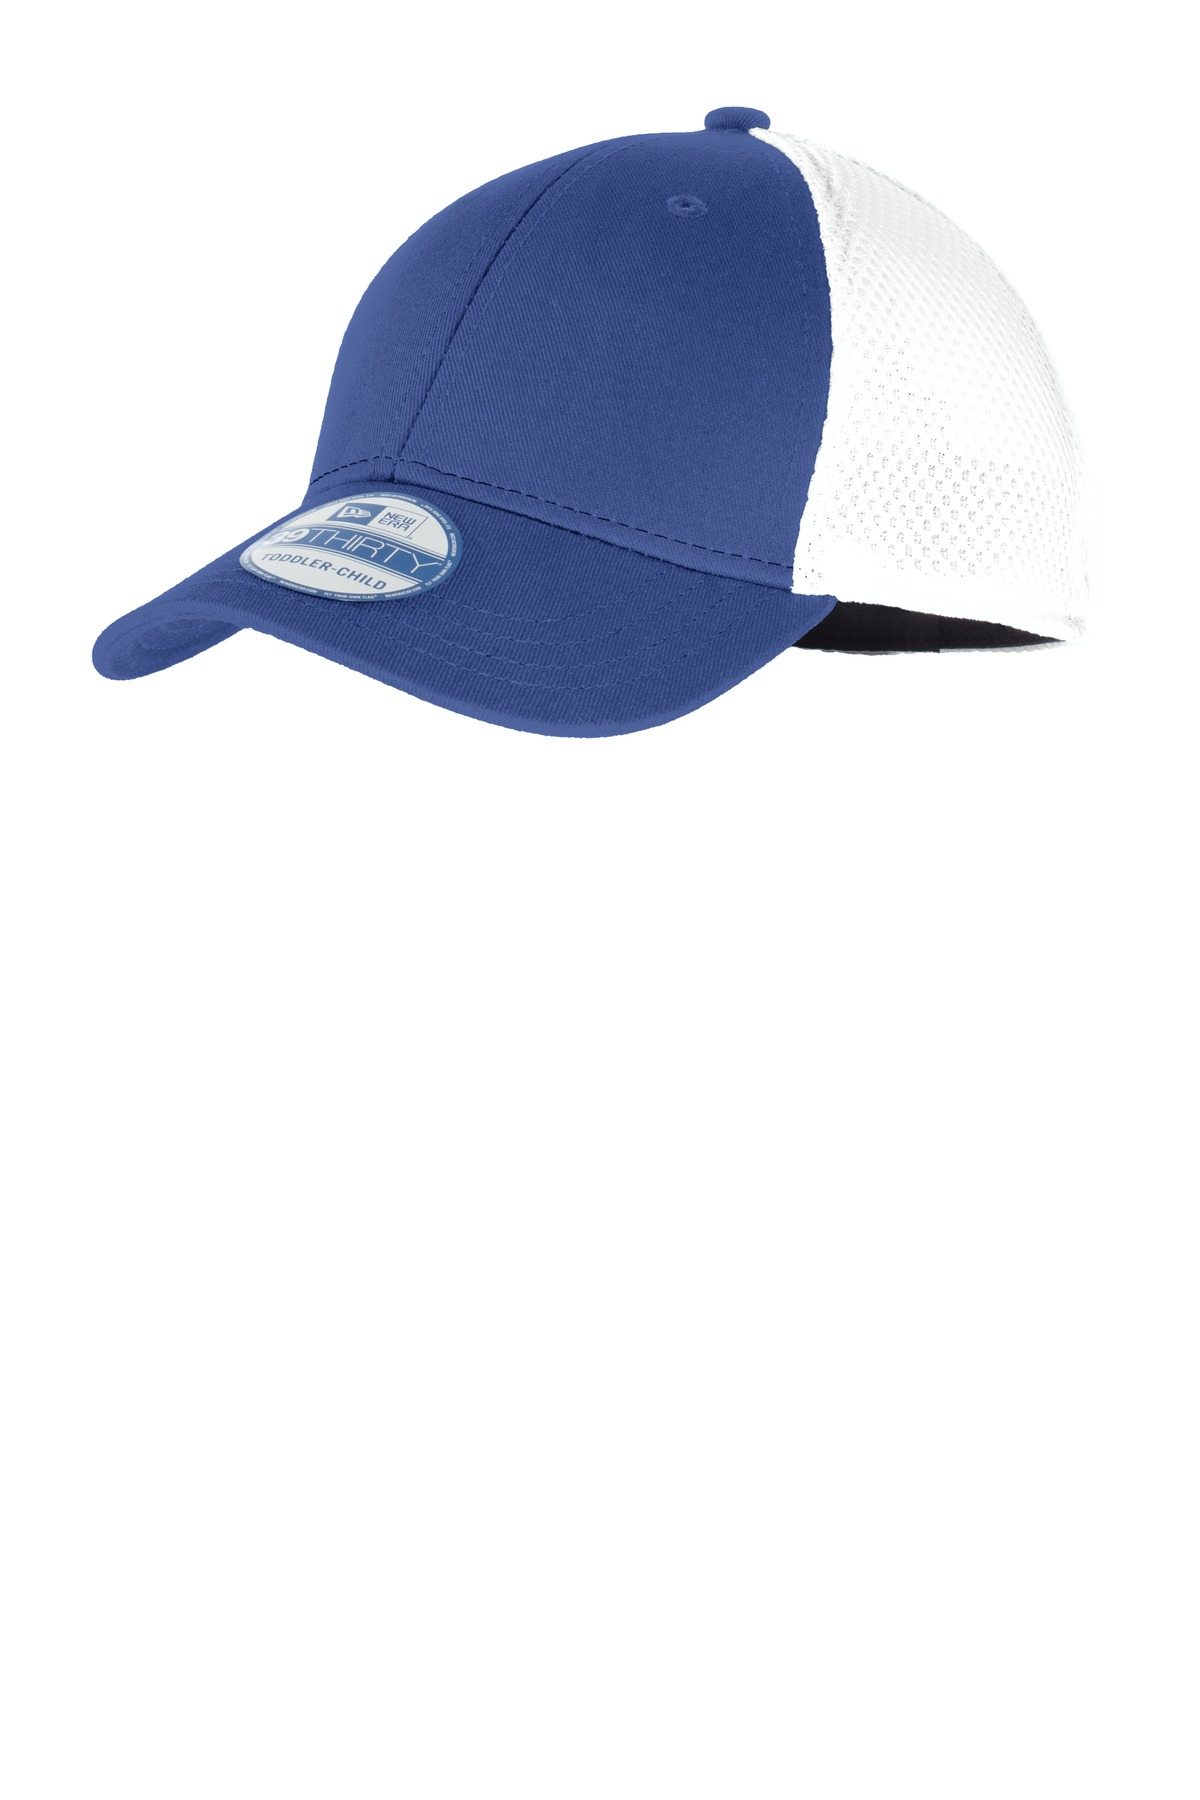 New Era ®  Youth Stretch Mesh Cap. NE302 - Royal/White